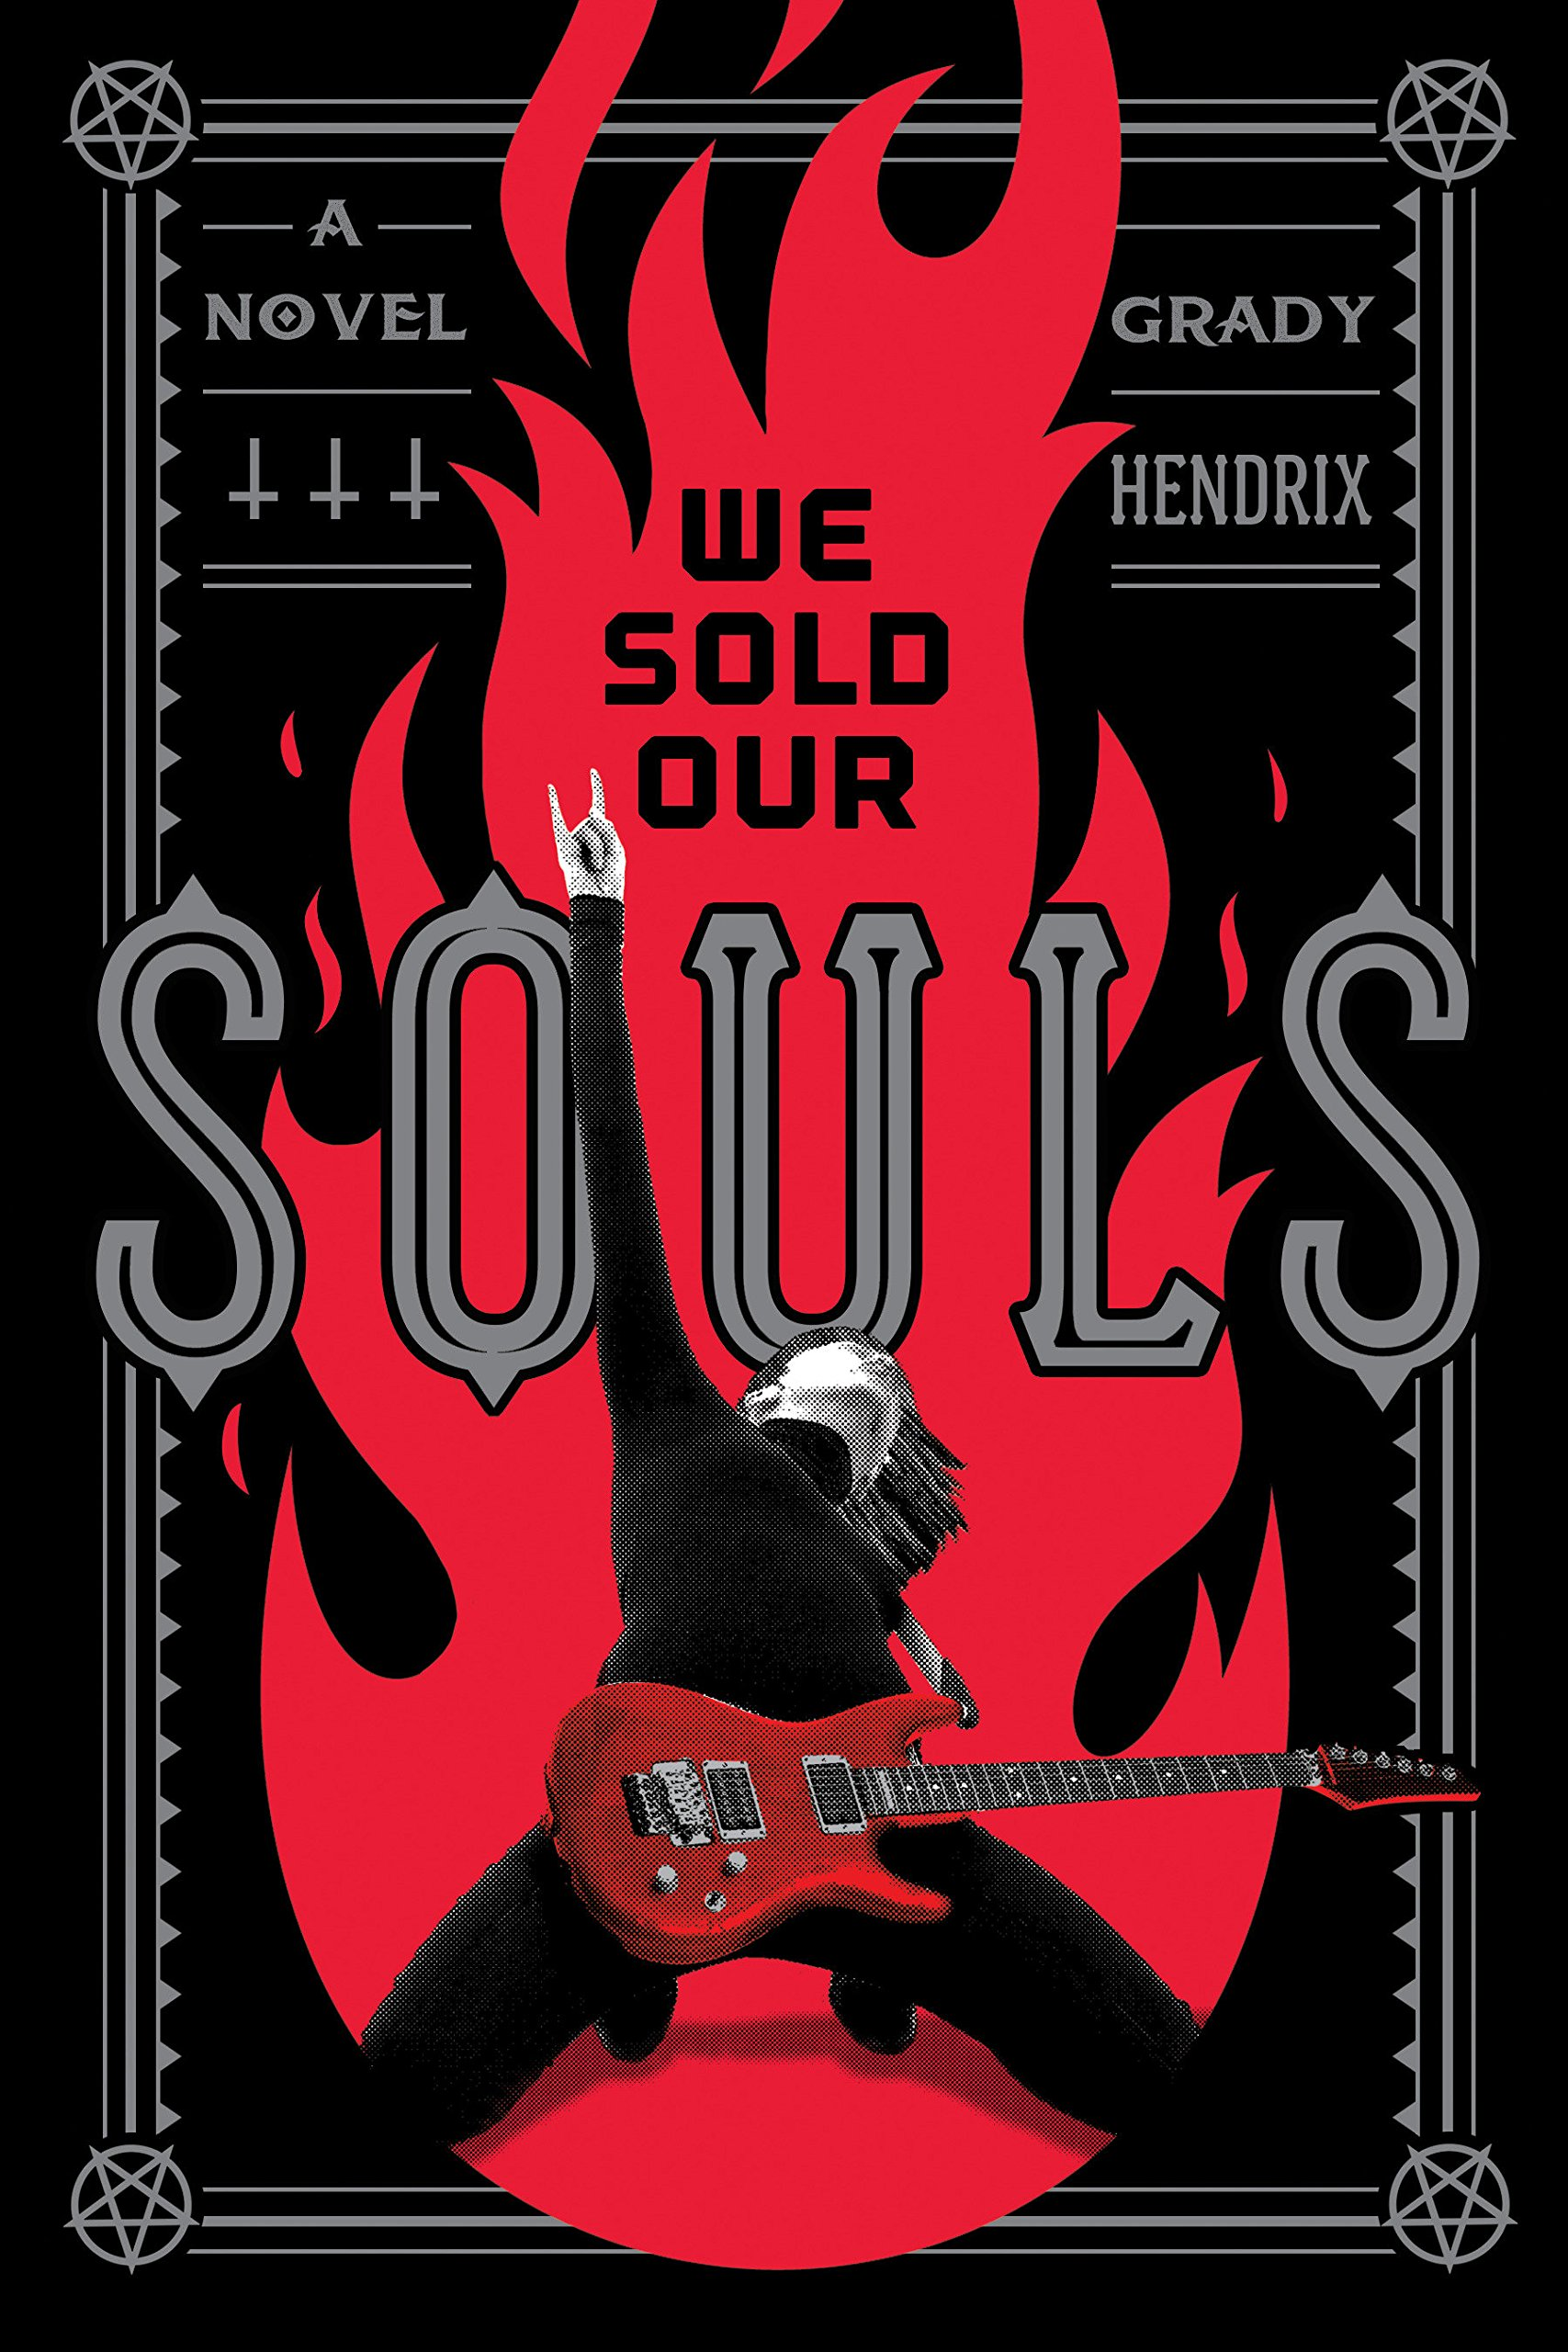 book cover for Grady Hendrix's We Sold Our Souls, featuring a guitarist doing a knee-slide, throwing horns, and engulfed in flame. The edges of this book are black, and it looks really cool.